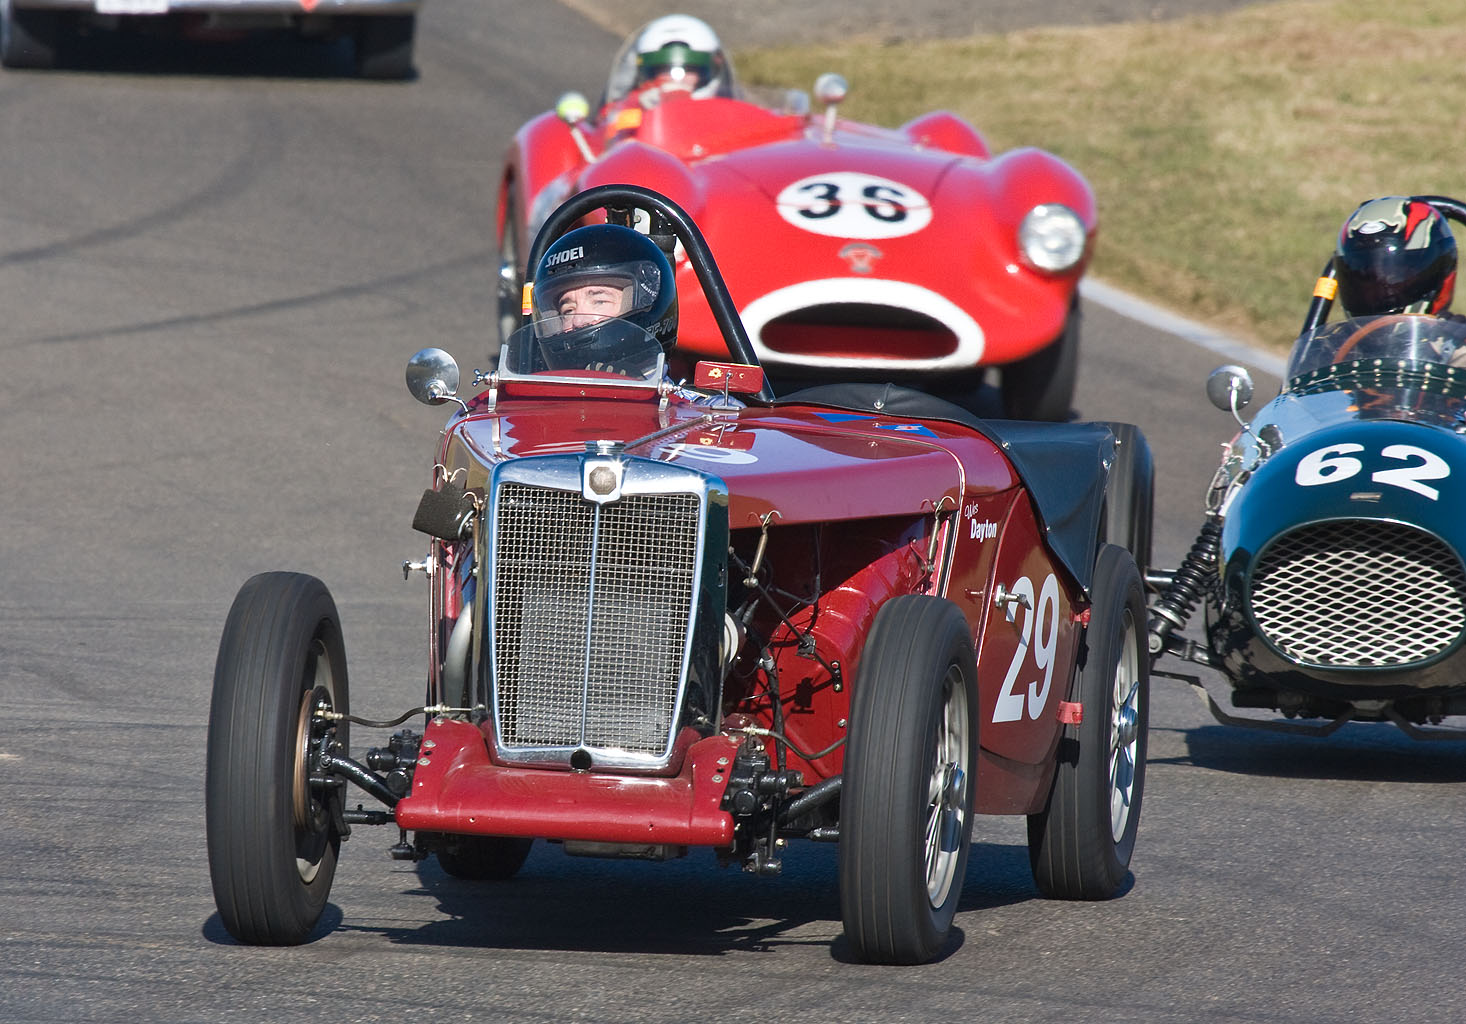 Picture of sports model MG TC, vintage car MG TC, sports model MG TC